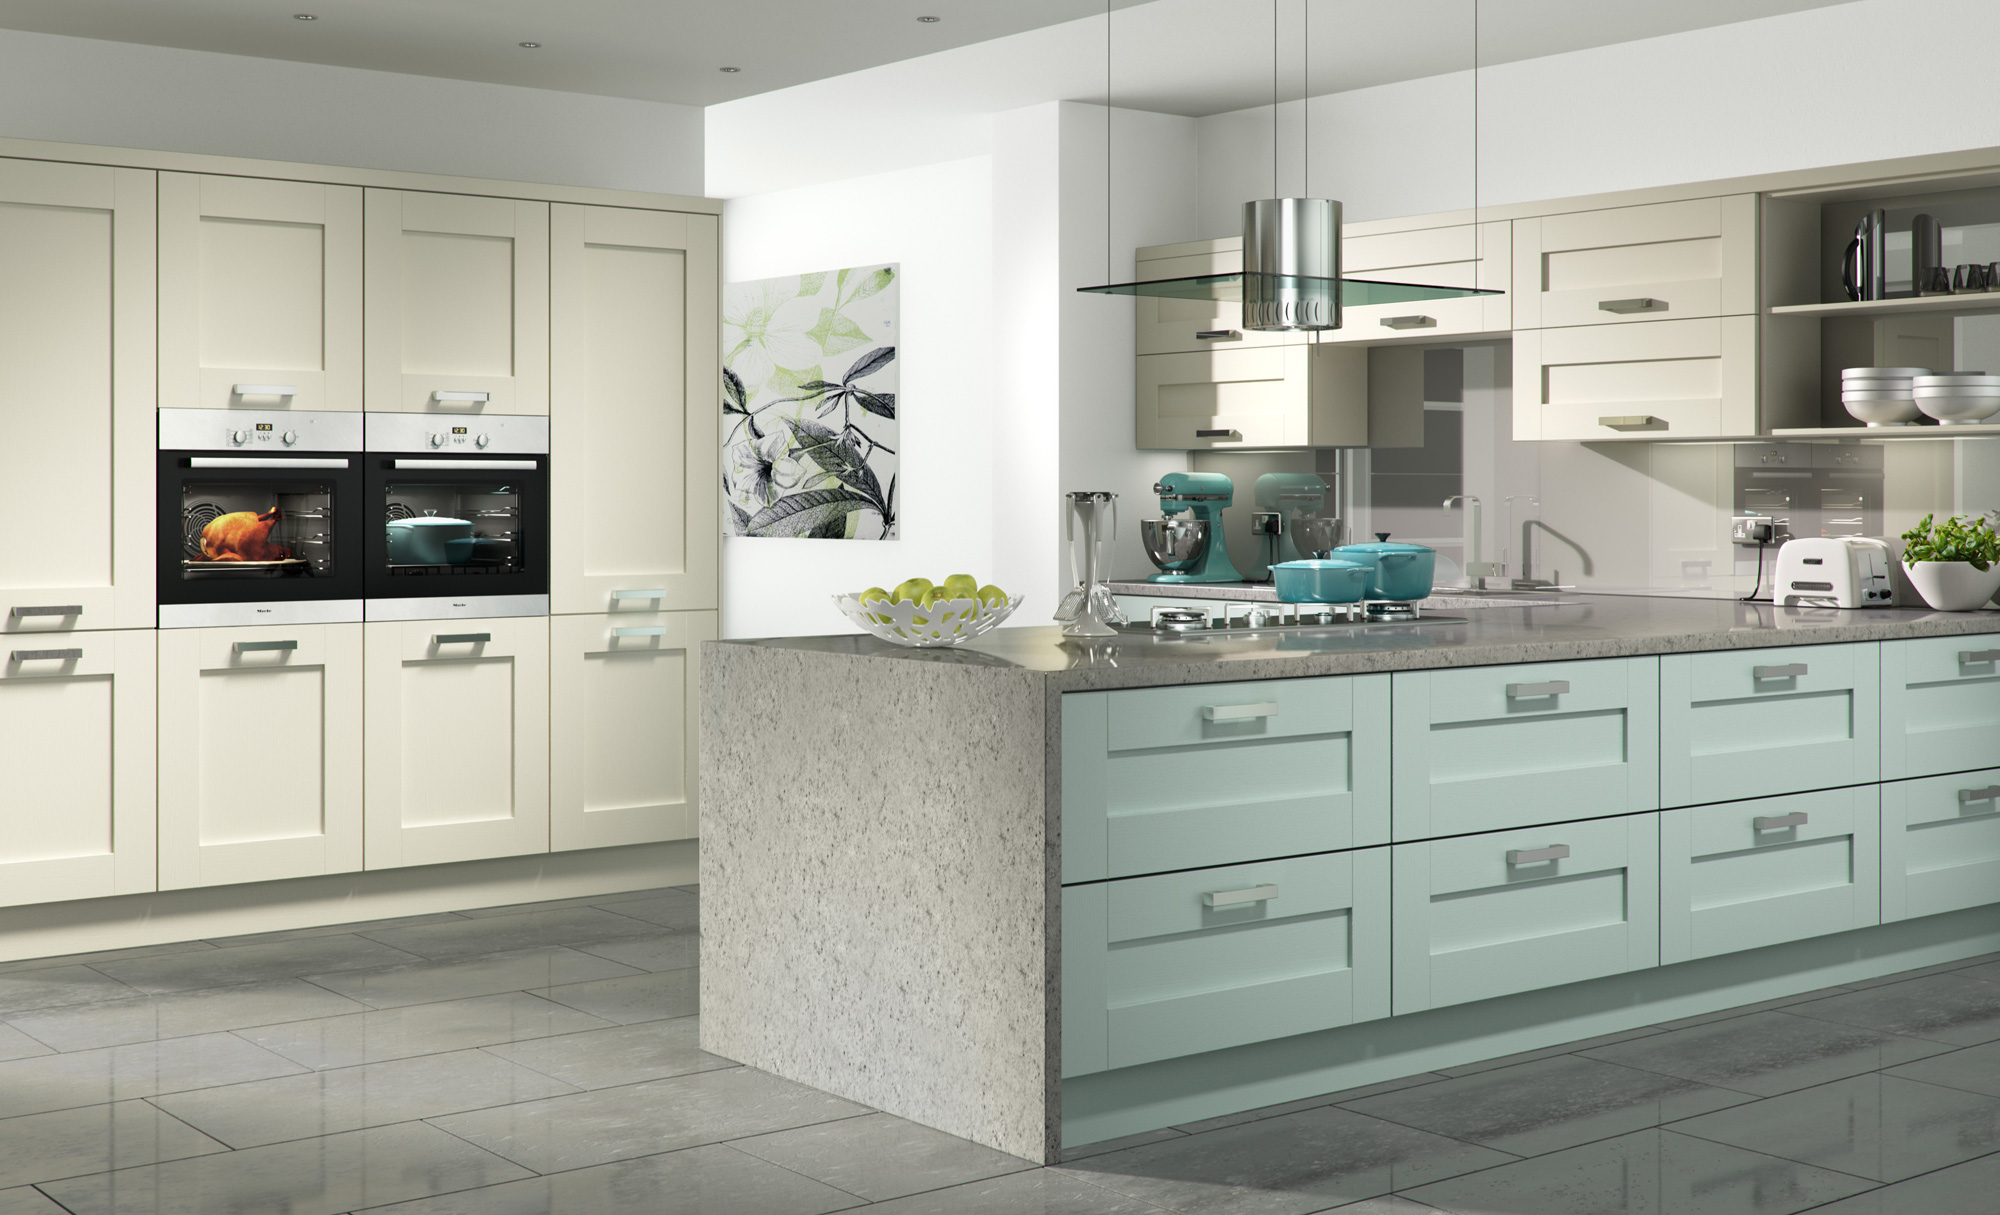 Contemporary Modern Windsor Shaker Painted Kitchen in Ivory & Light Blue